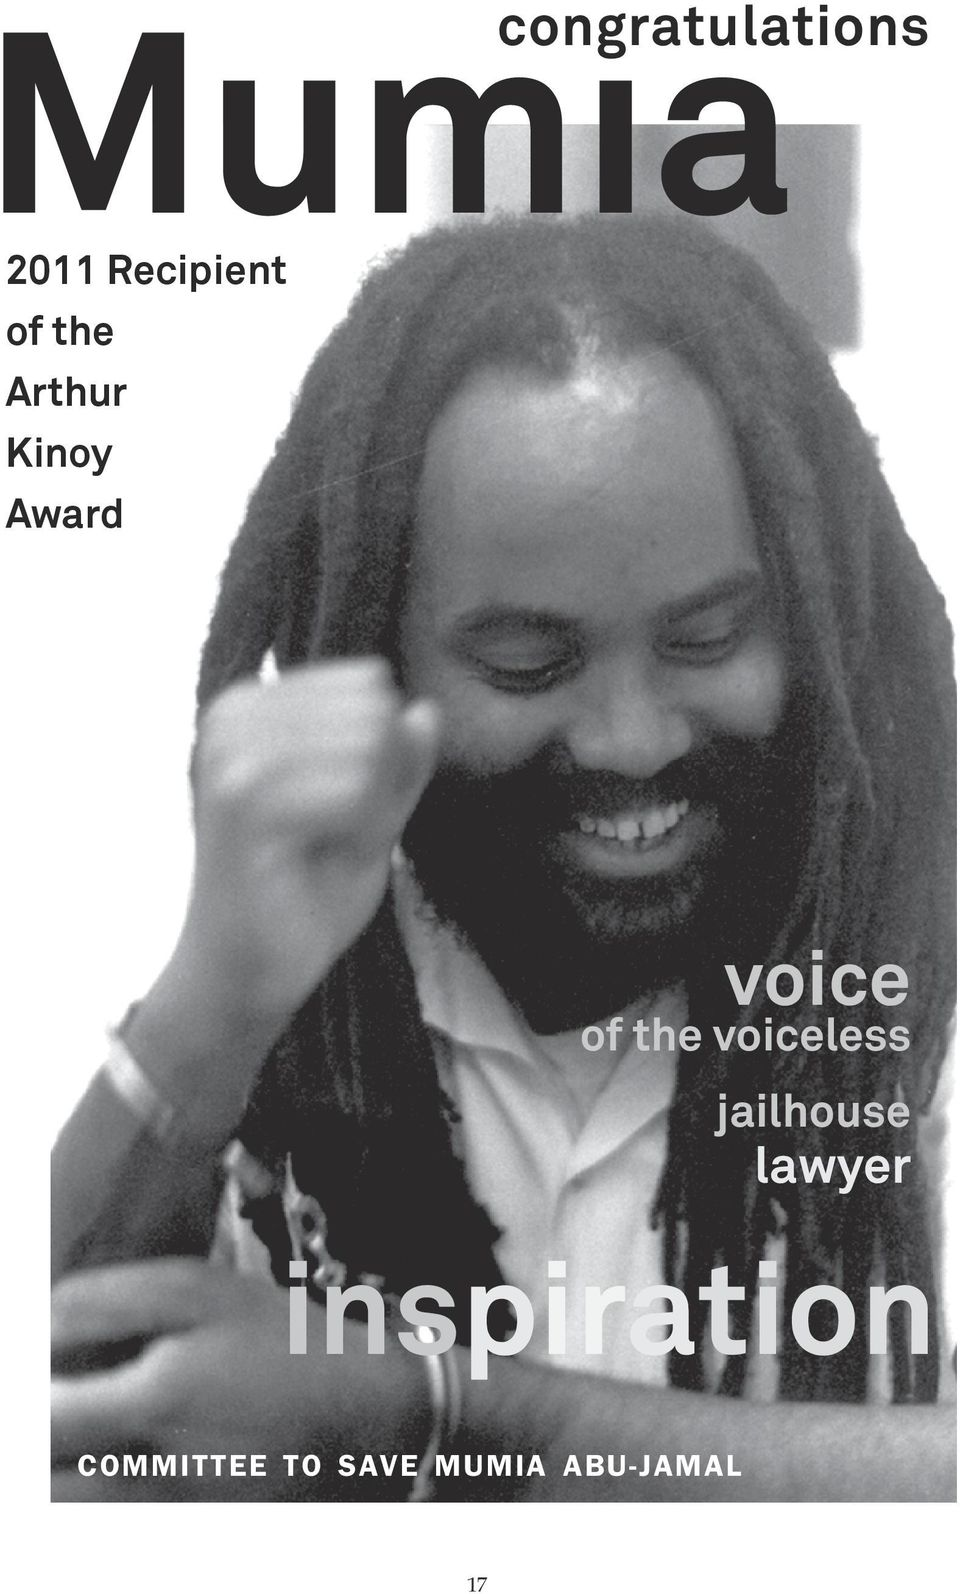 the voiceless jailhouse lawyer